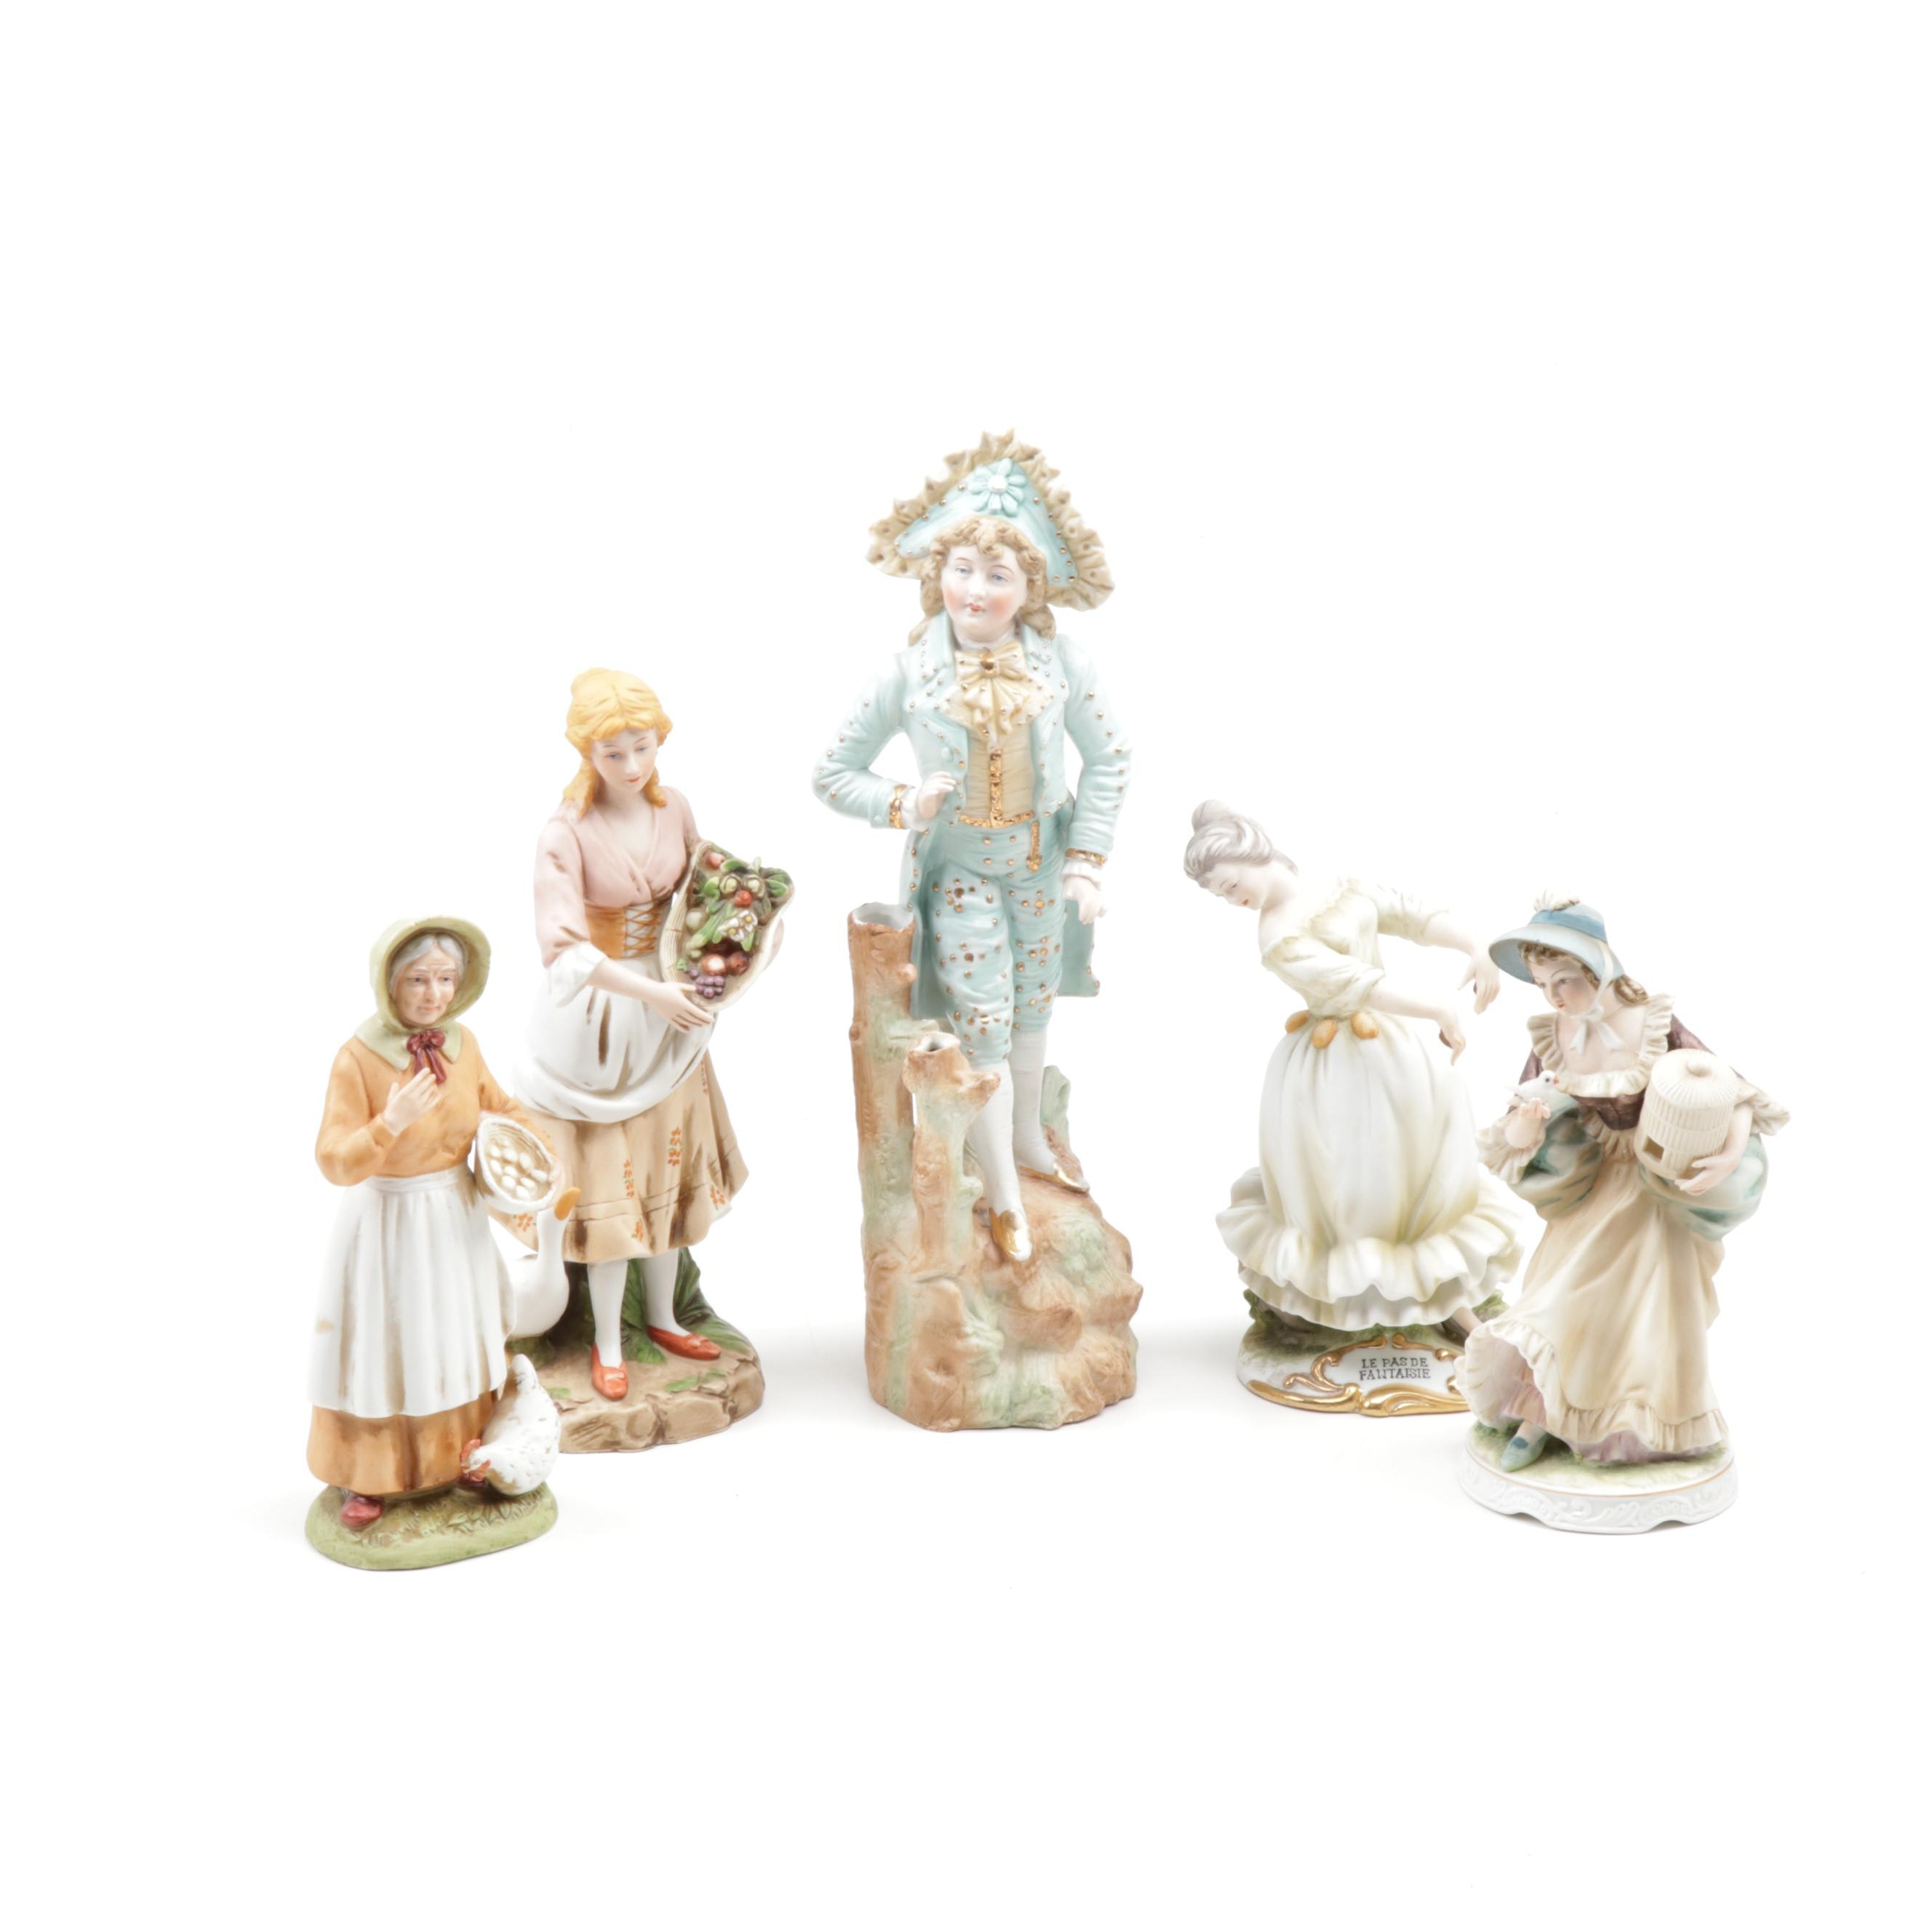 Lefton and More Hand-Painted Porcelain Figurines